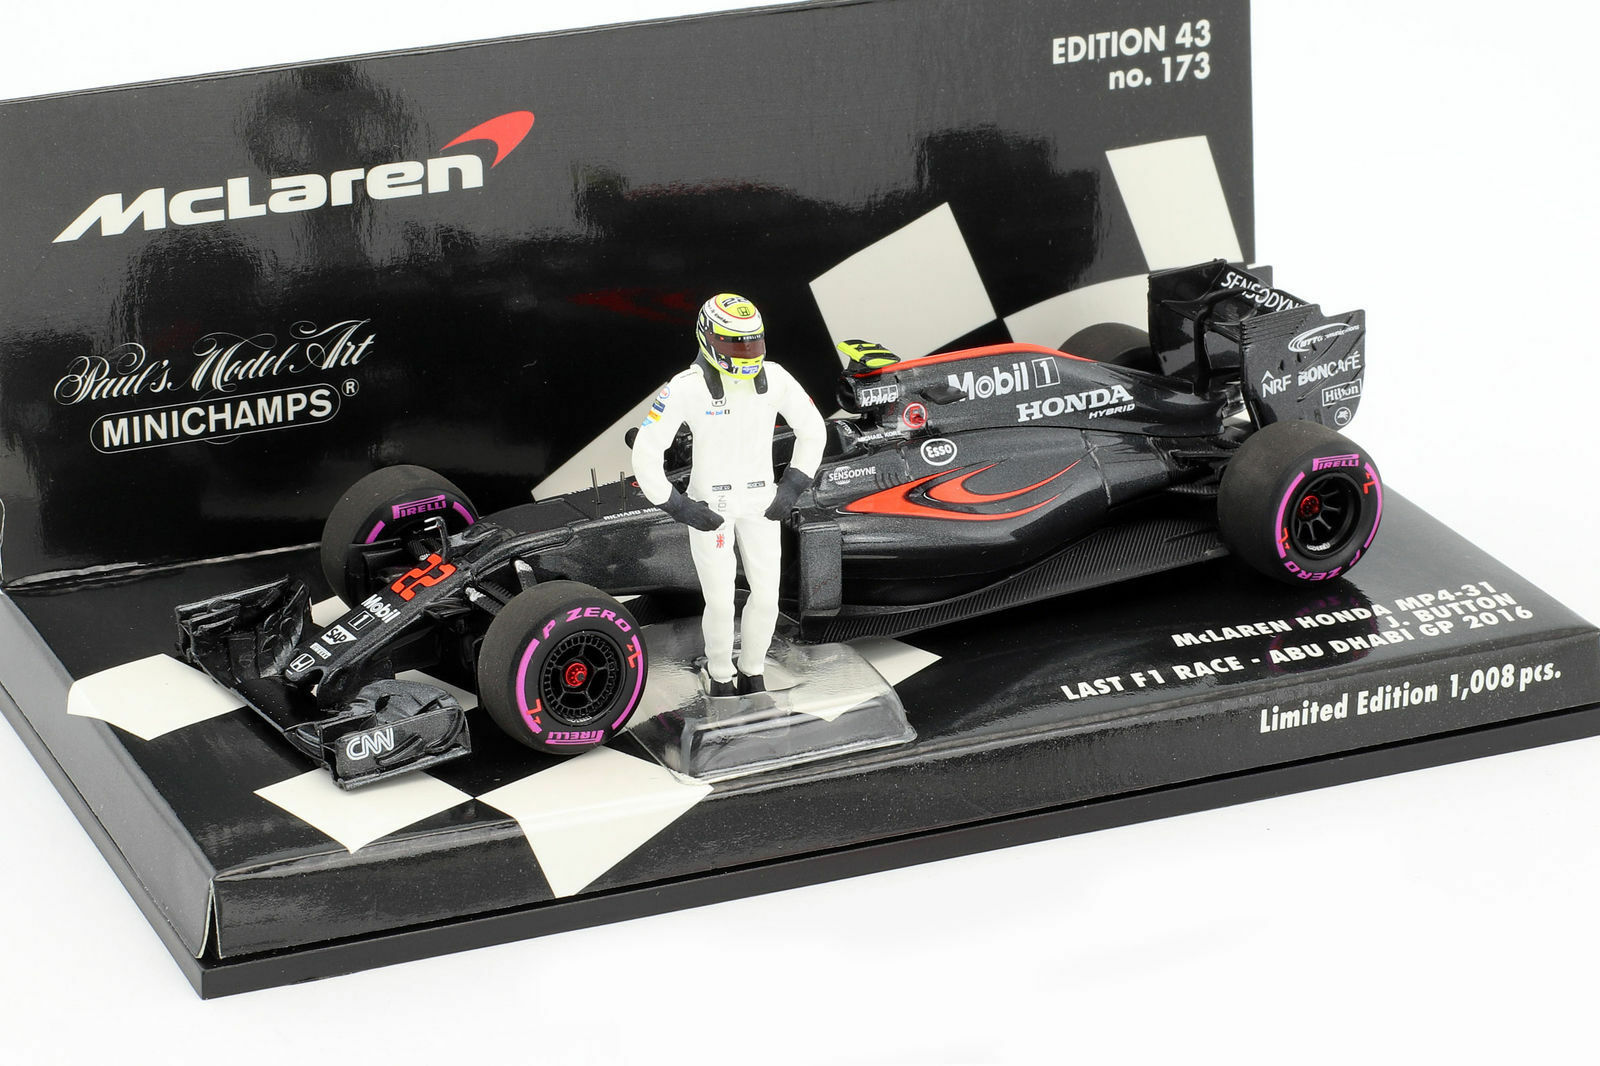 MINICHAMPS 530164022 143 McLaren MP4-31 Jenson Button Final GP Abu Dhabi 2016